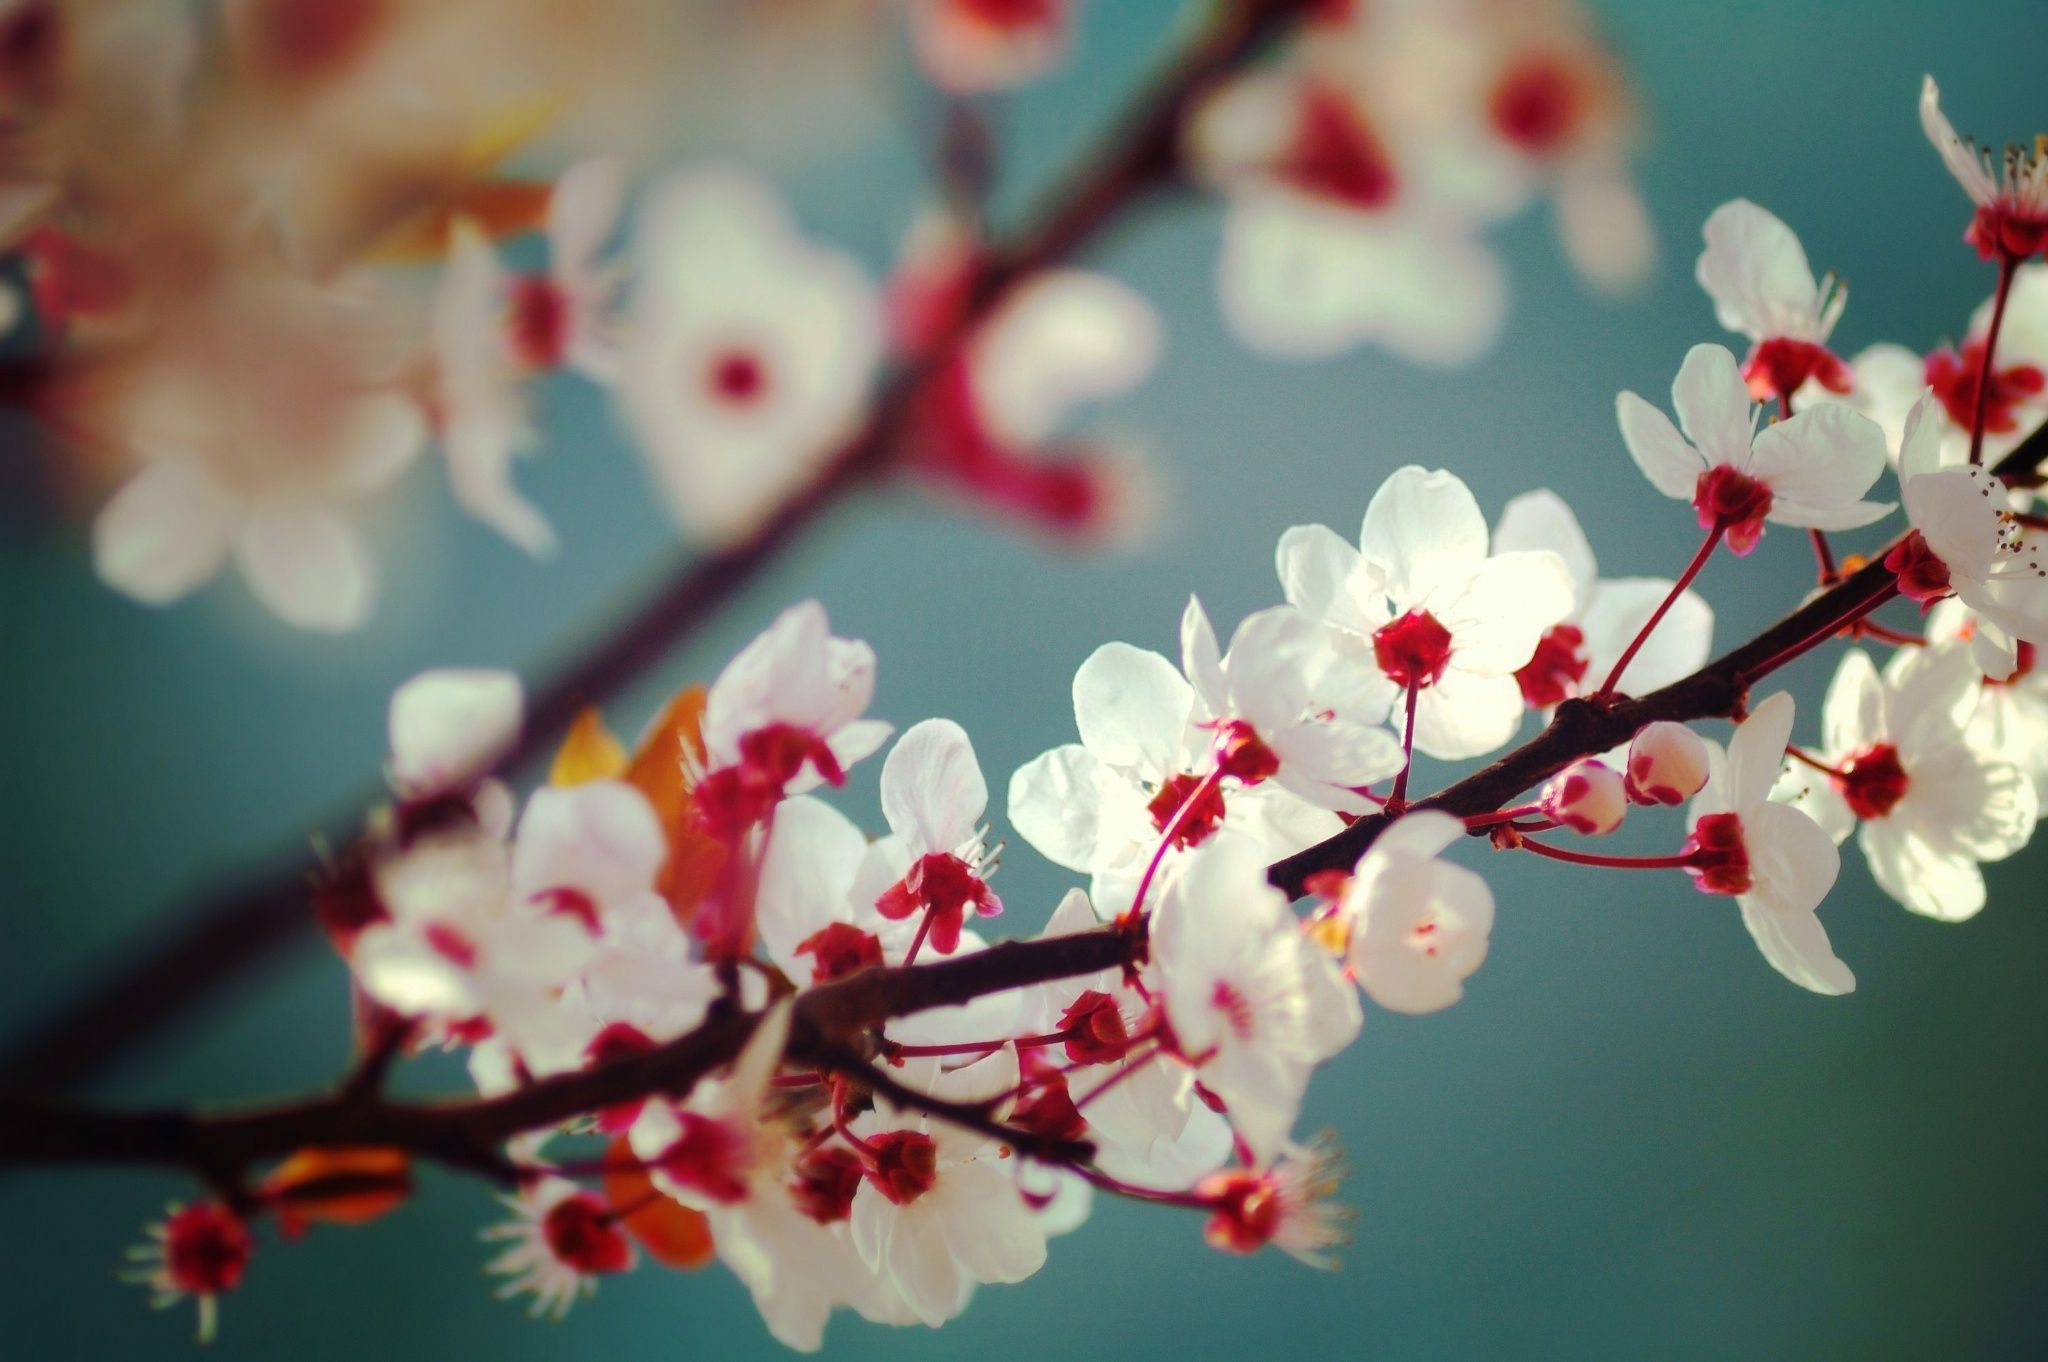 A reminder of Spring by Luiza Lazar on 500px